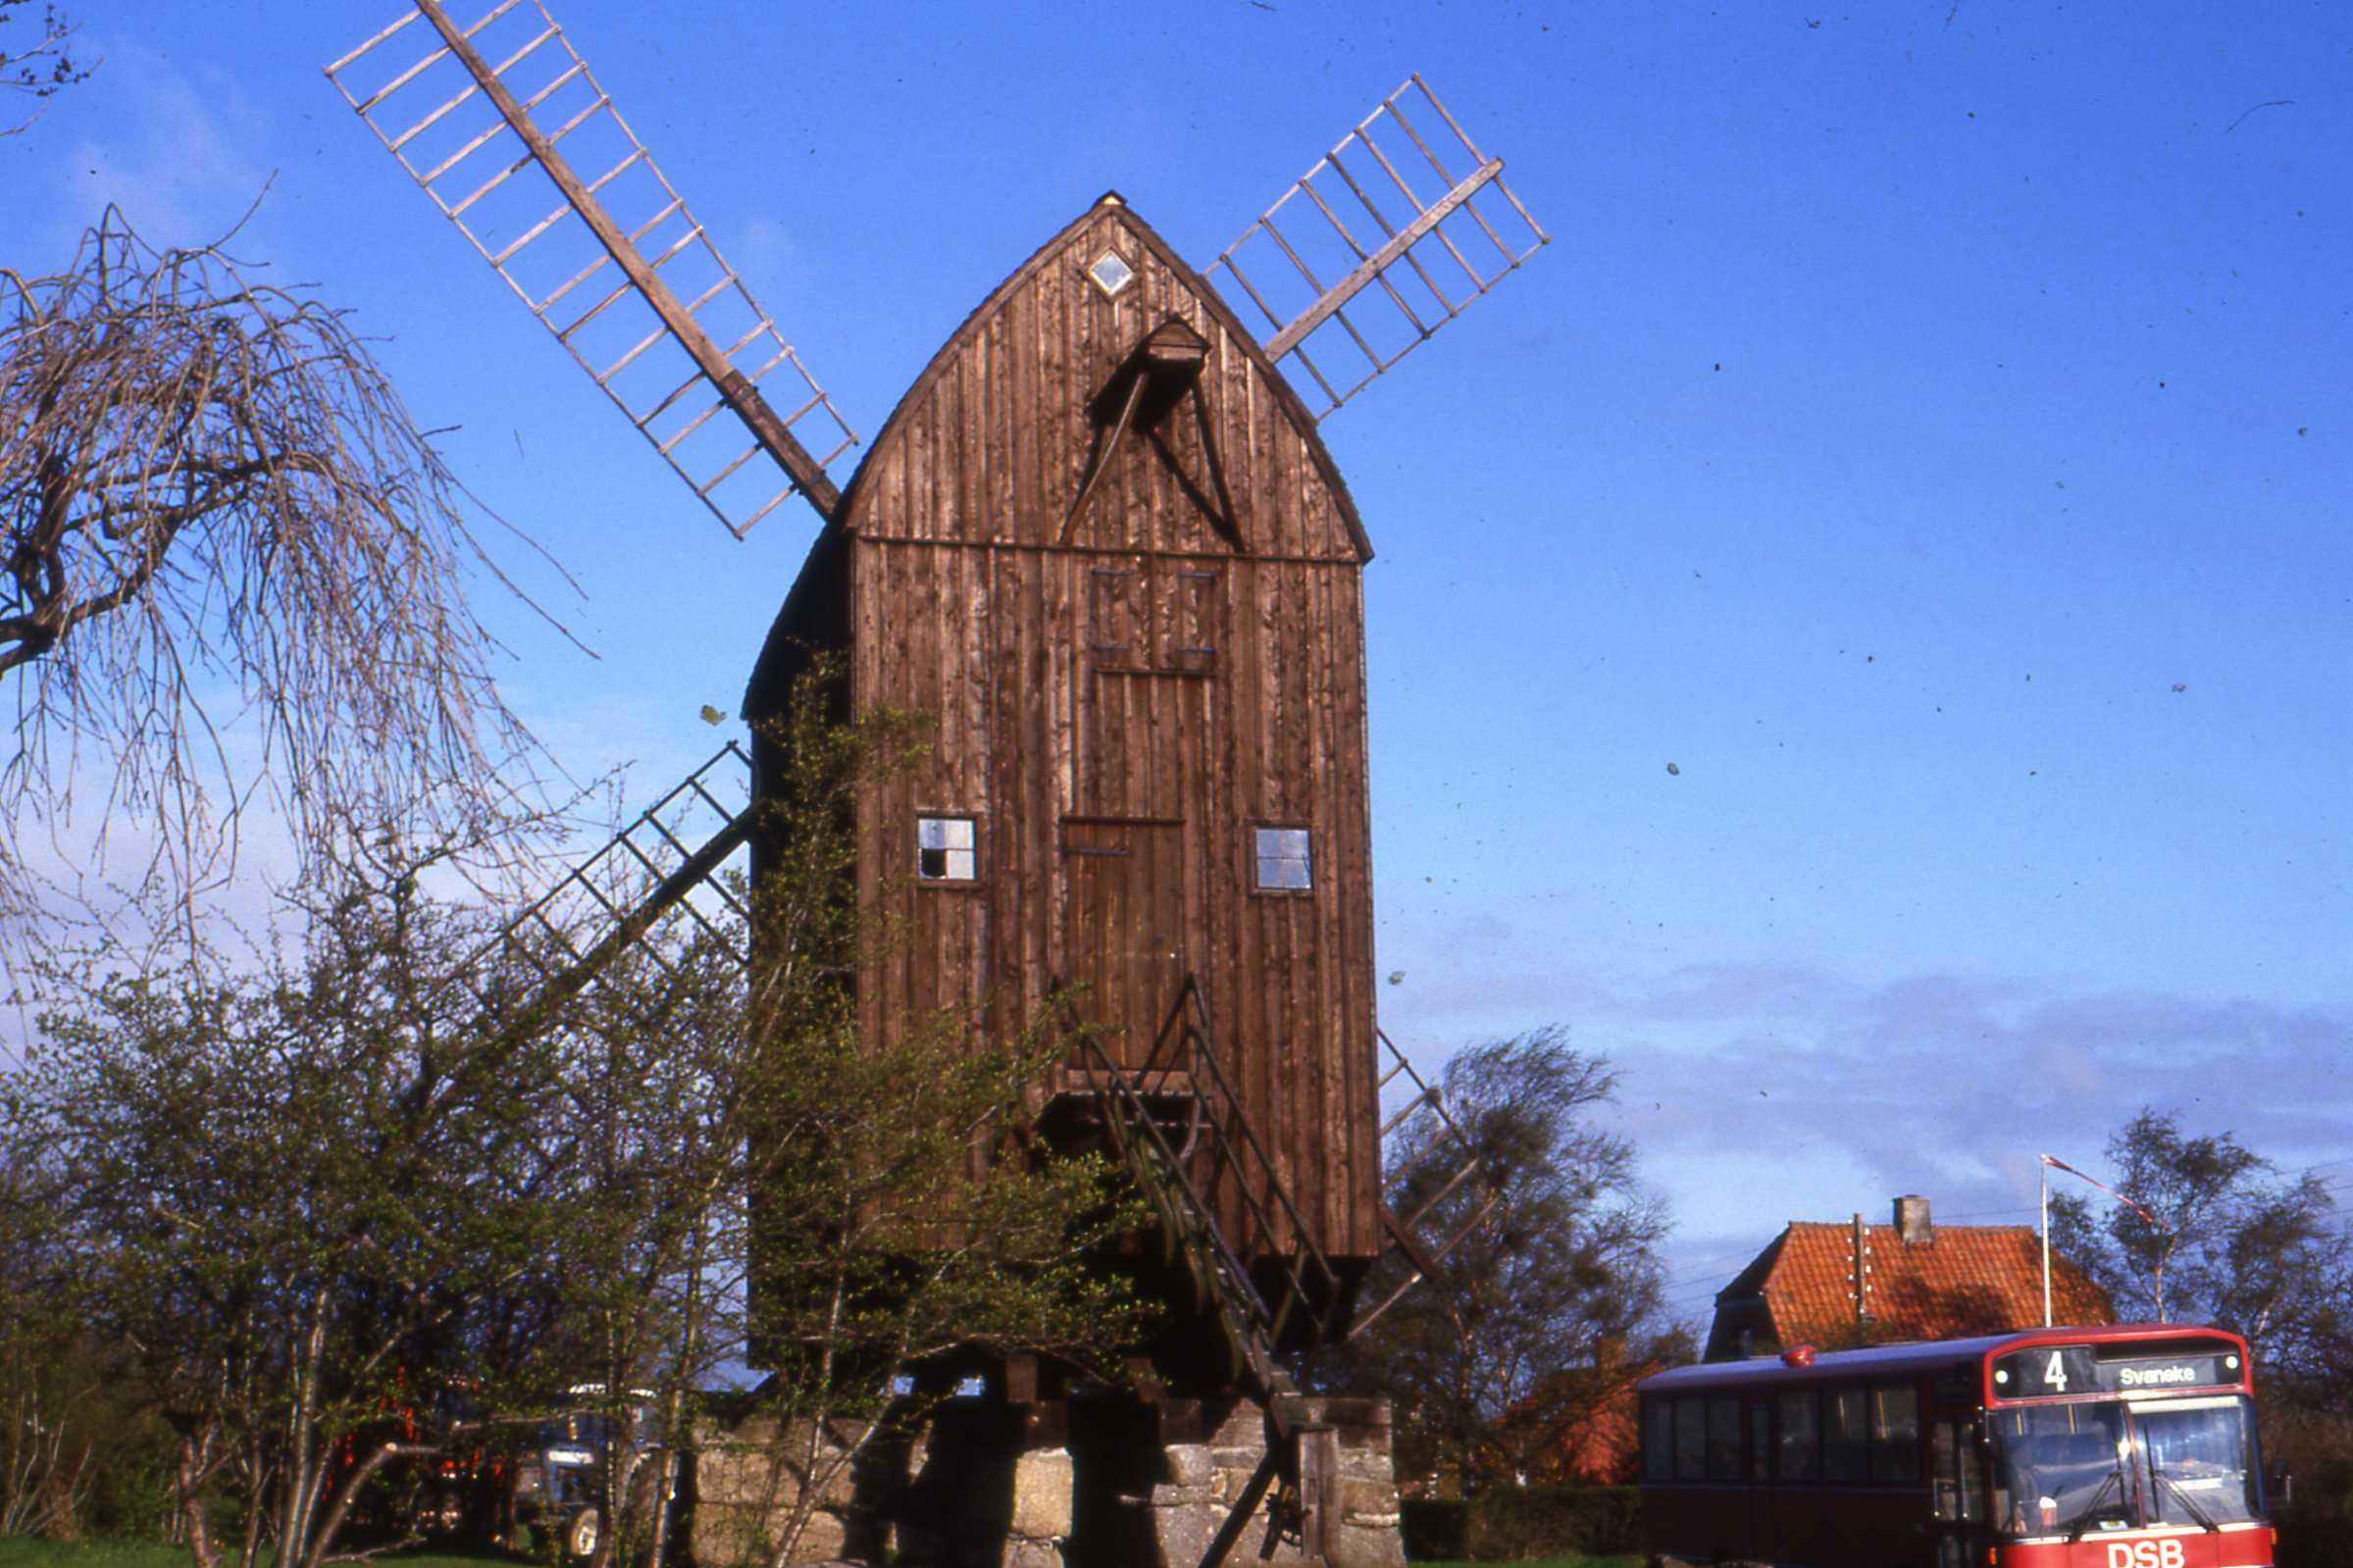 Wooden post mill in Svaneke, Denmark, the oldest in the country. Photo taken in April 1987.